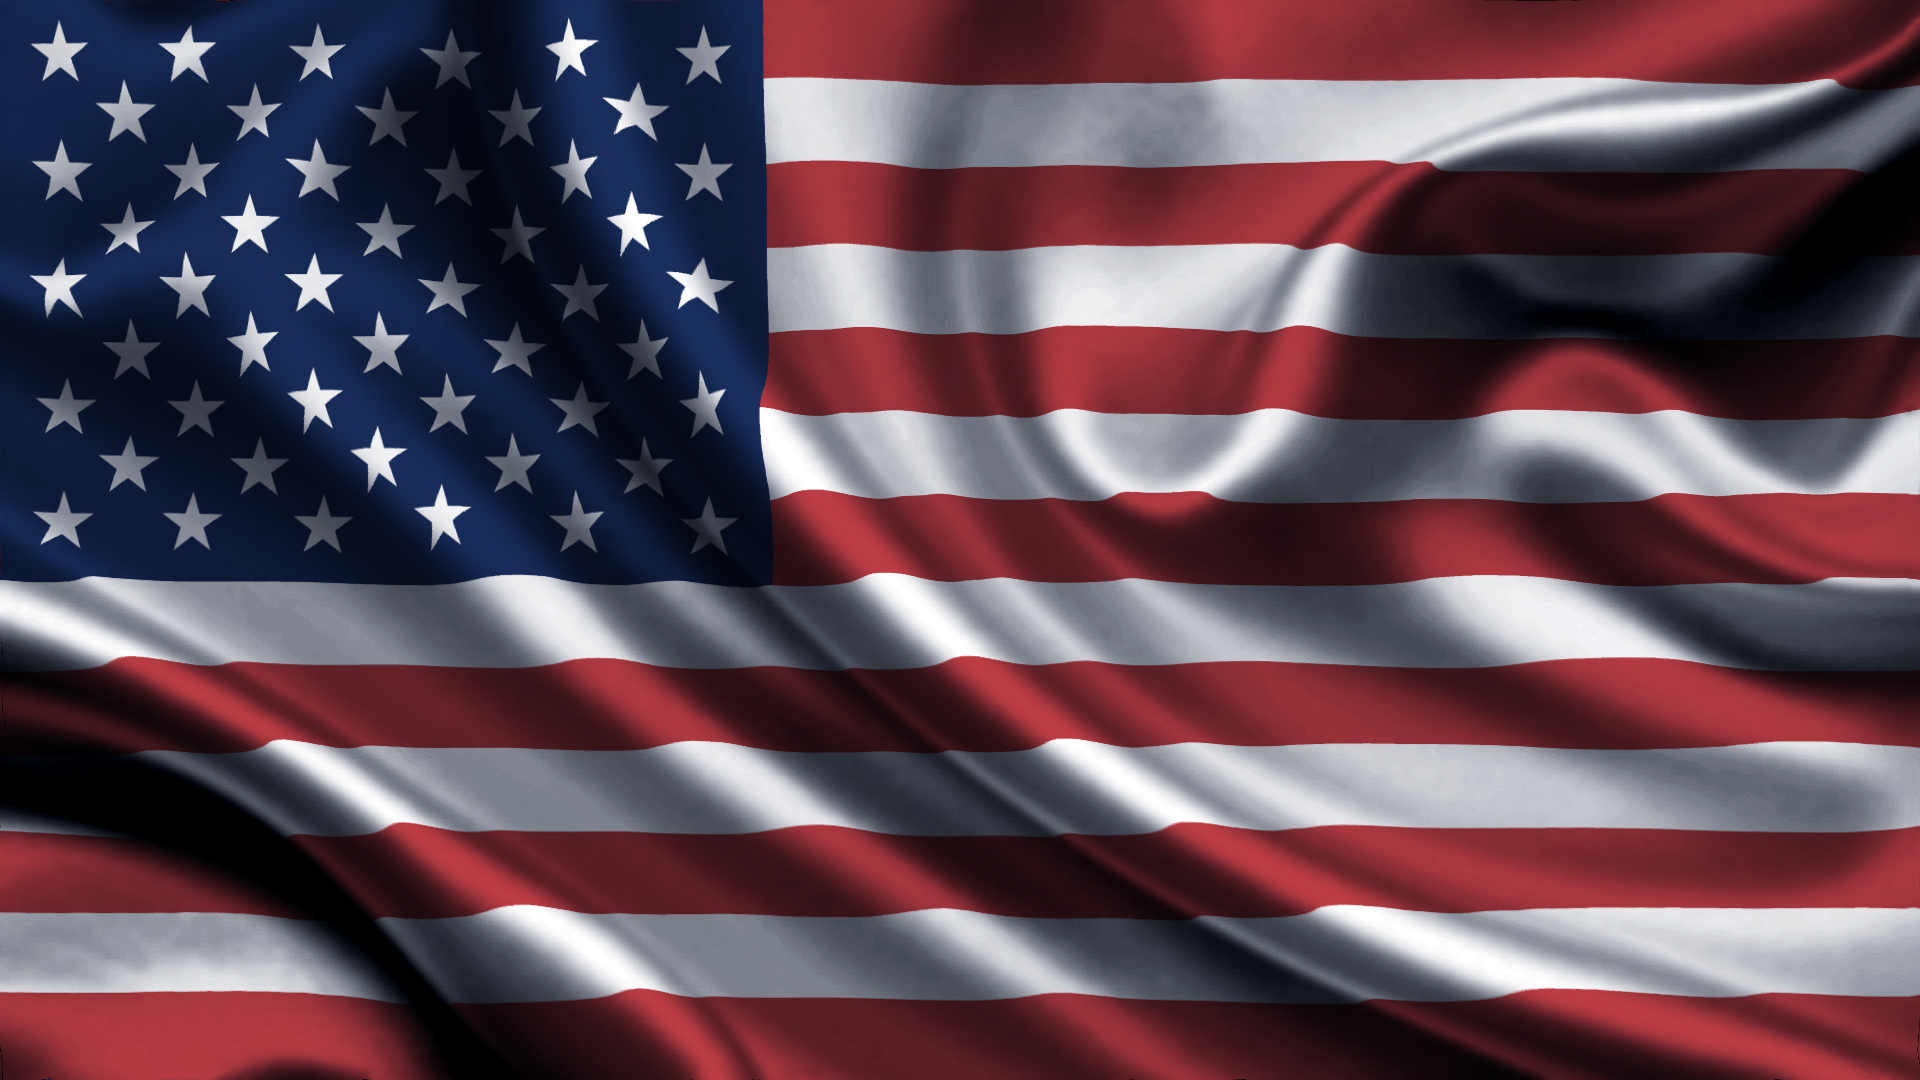 United States flag wallpaper 1920x1080 47362 WallpaperUP 1920x1080